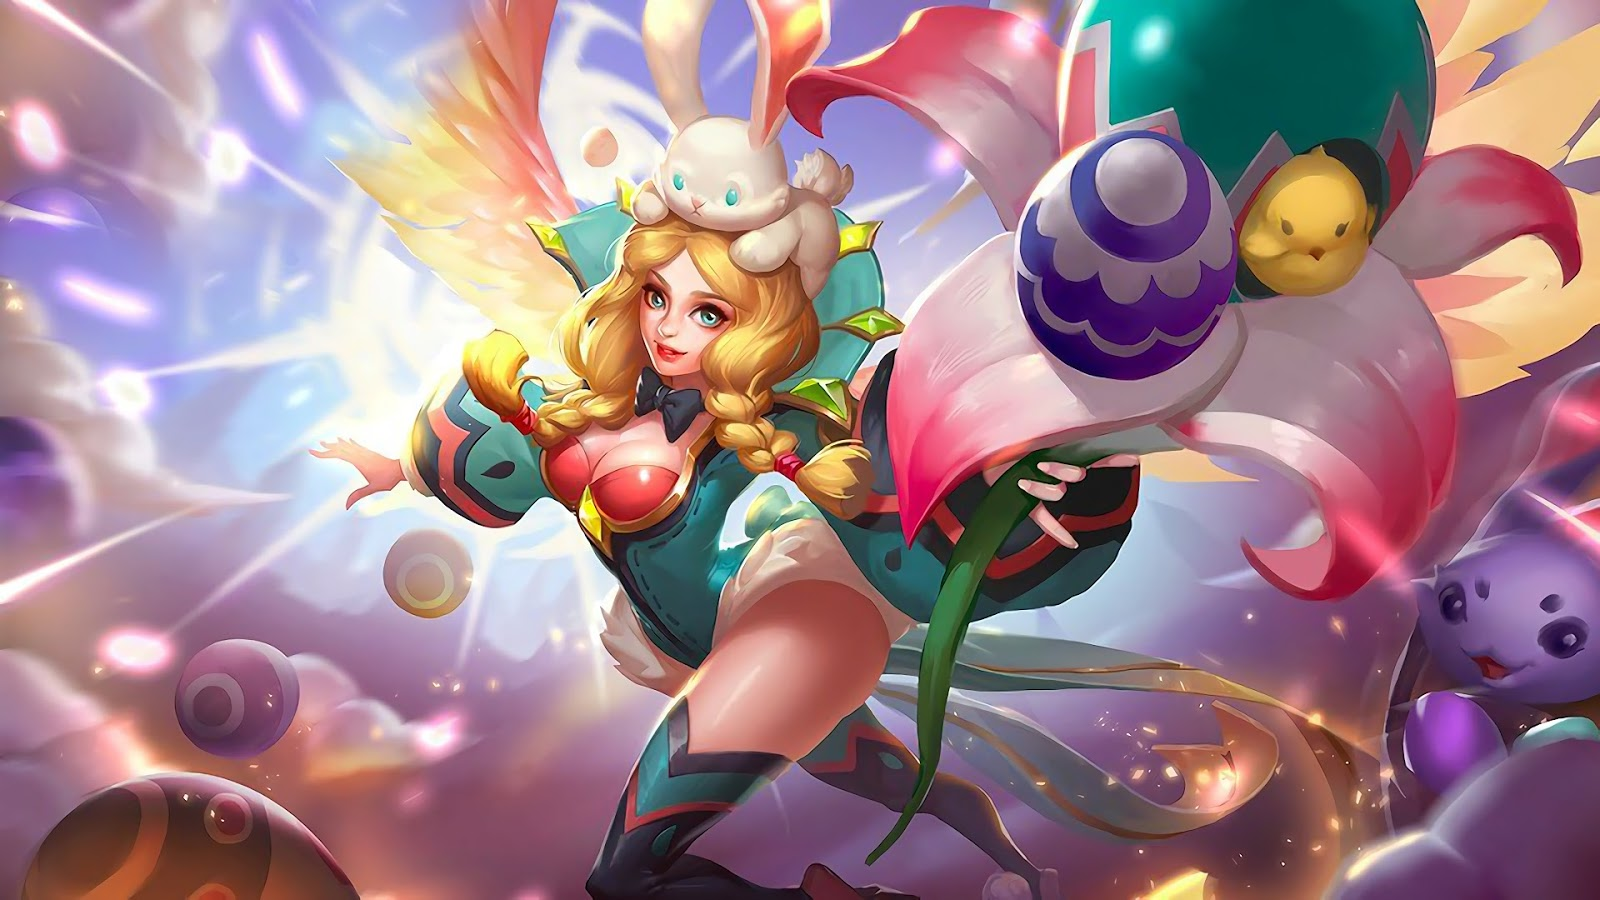 Wallpaper Rafaela Flower Fairy Skin Mobile Legeneds HD for PC